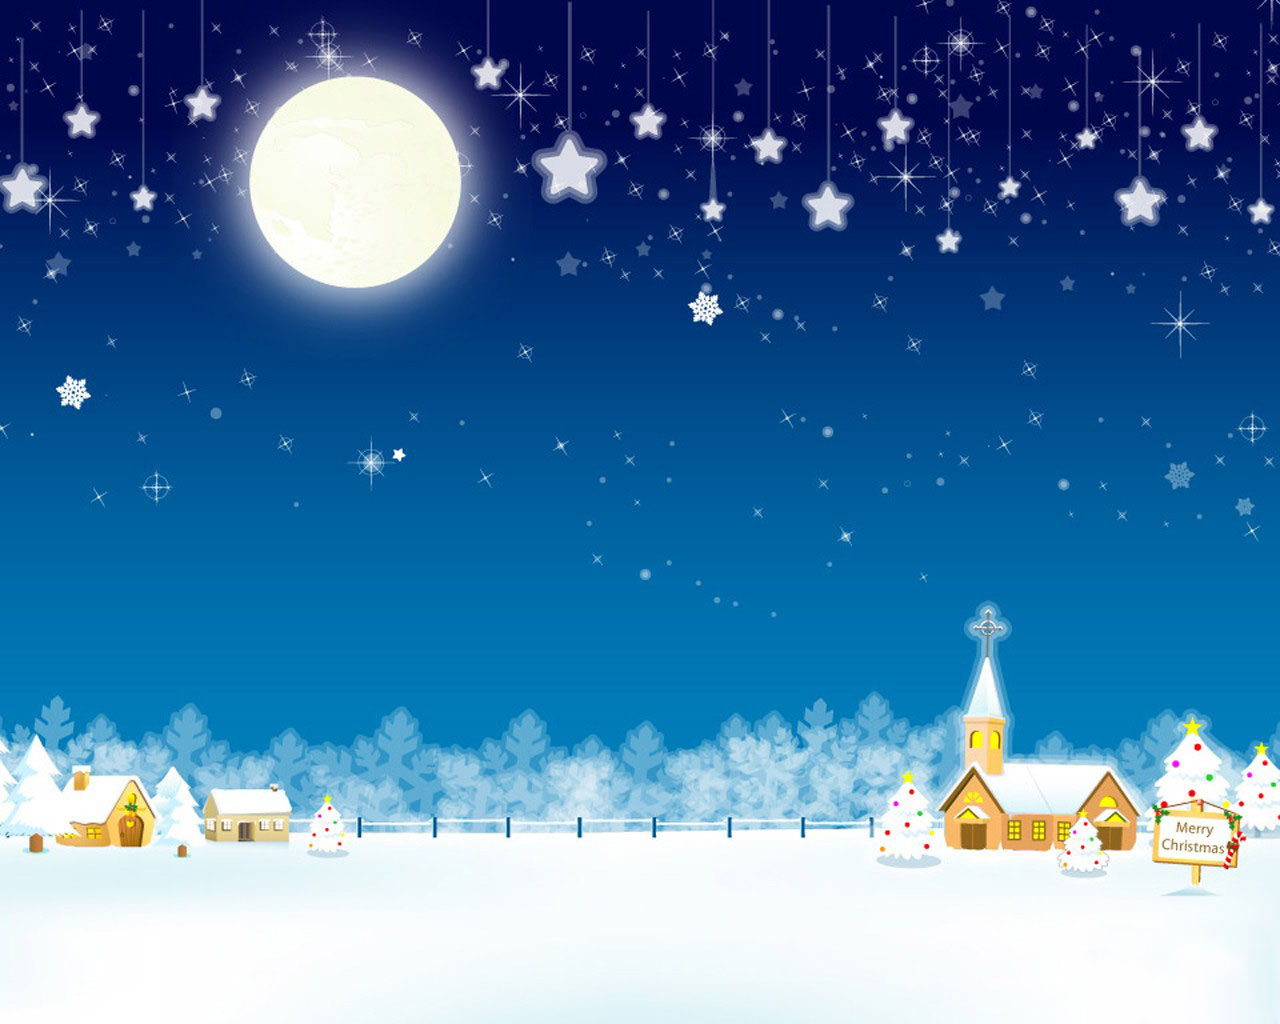 Animated christmas backgrounds for powerpoint